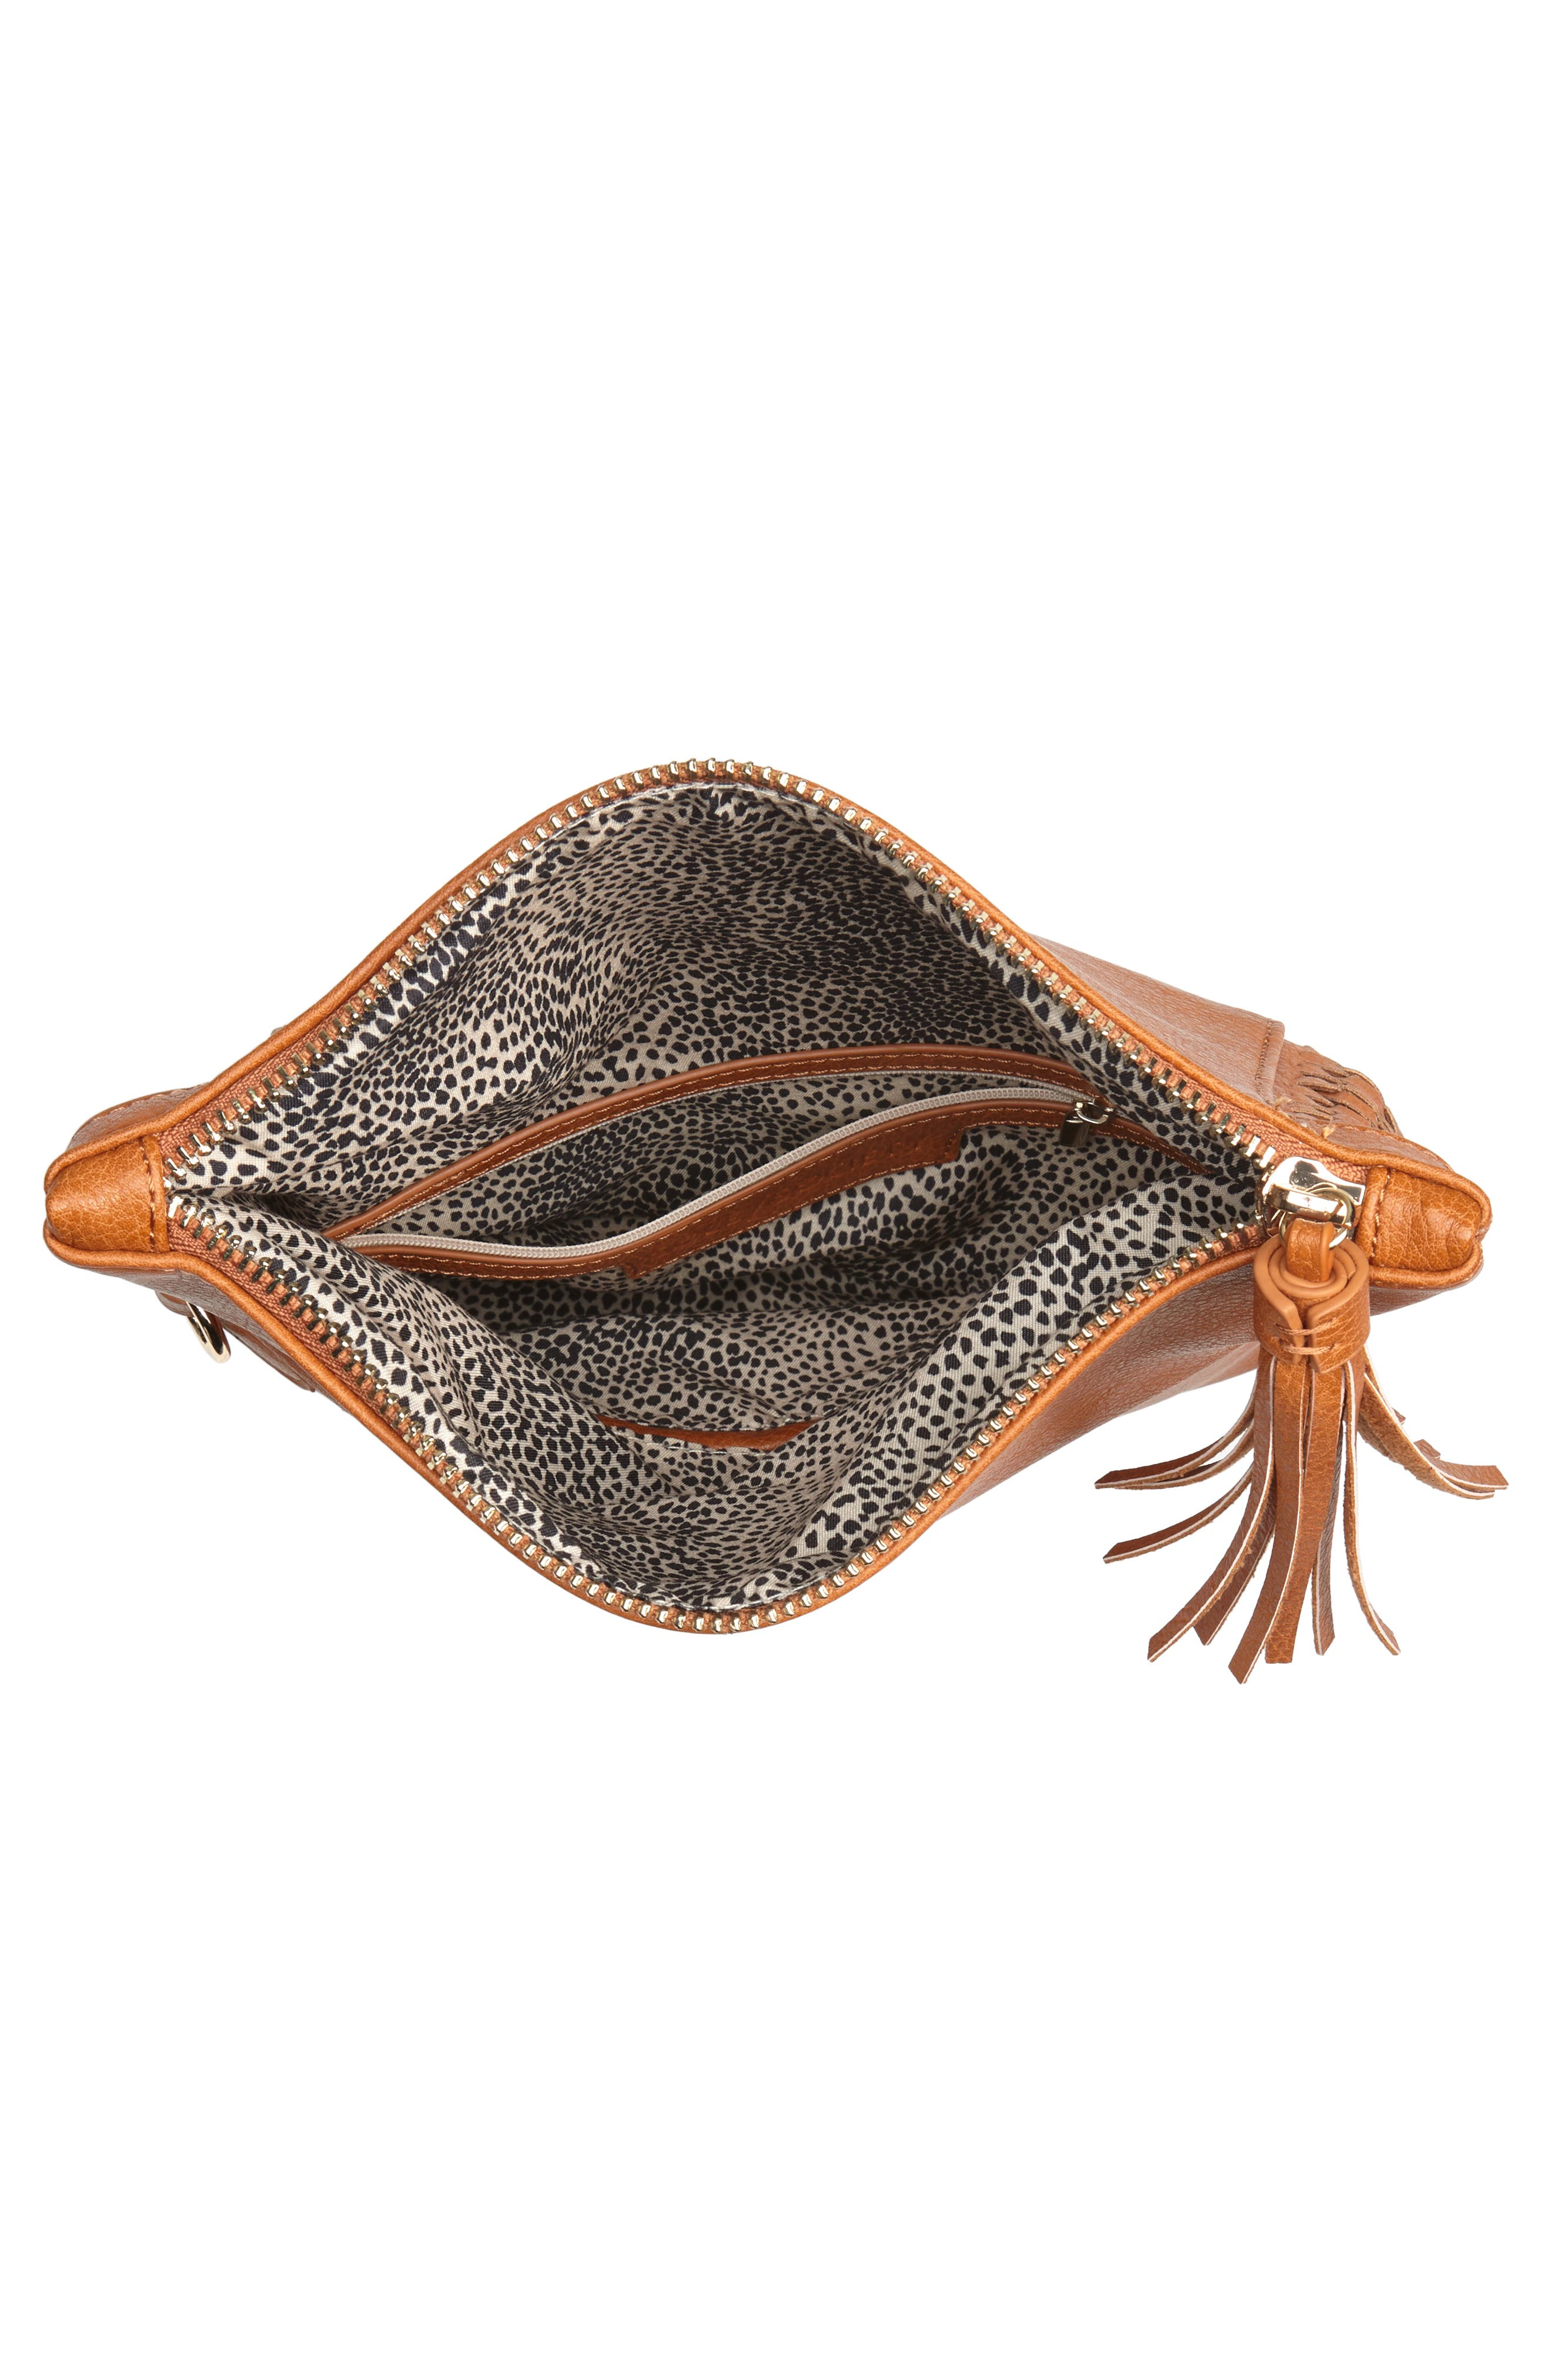 Tara Whipstitched Faux Leather Clutch,                             Alternate thumbnail 4, color,                             230